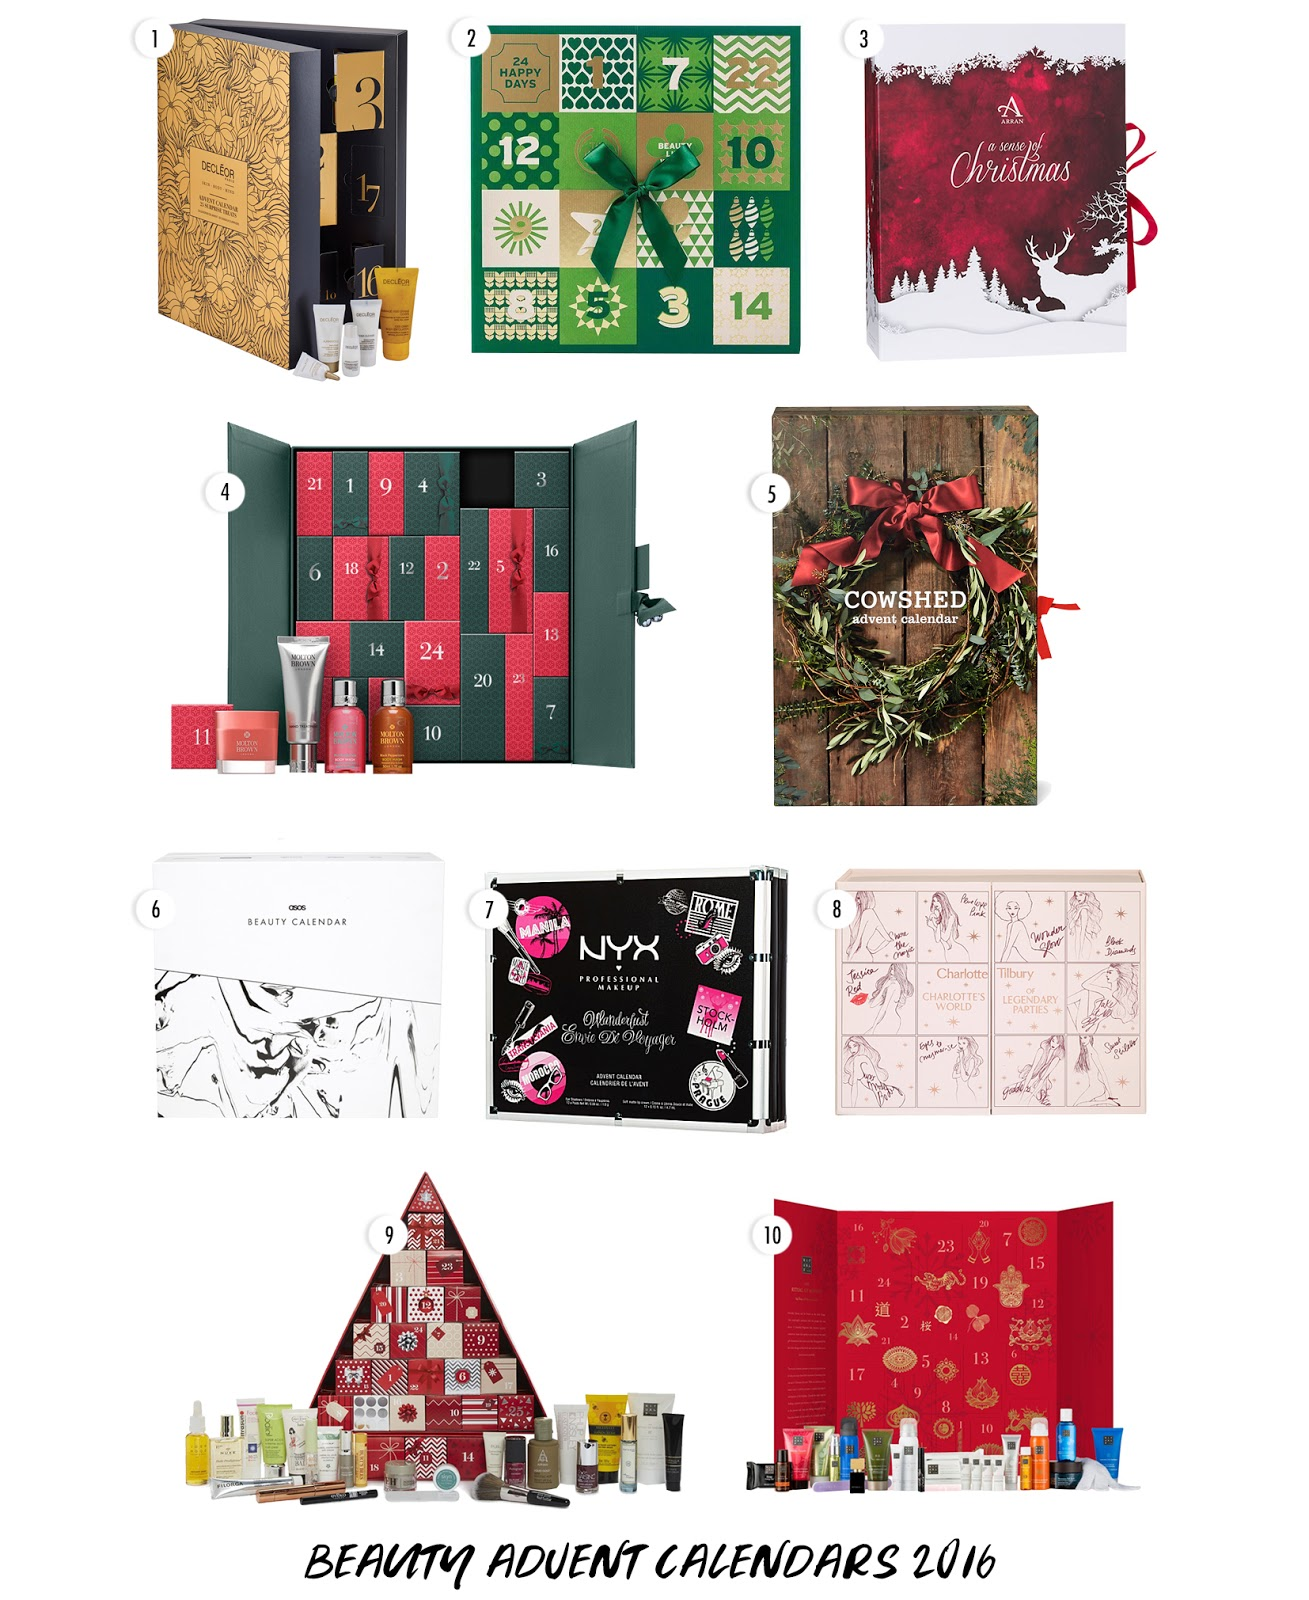 Top 10 Beauty Advent Calendars 2016